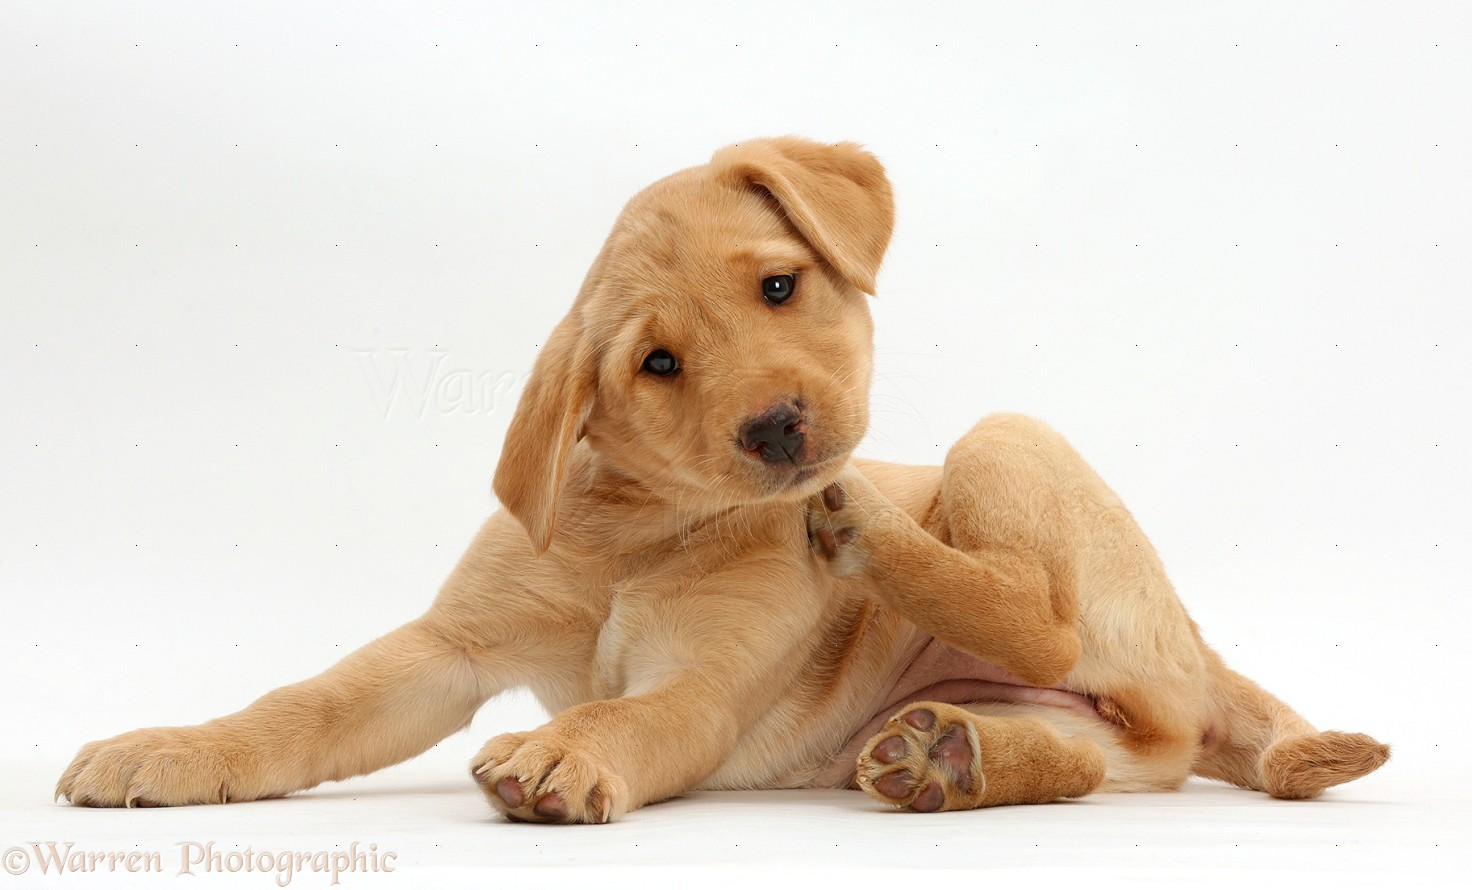 Why does my puppy keep itching and scratching? | Yahoo Answers